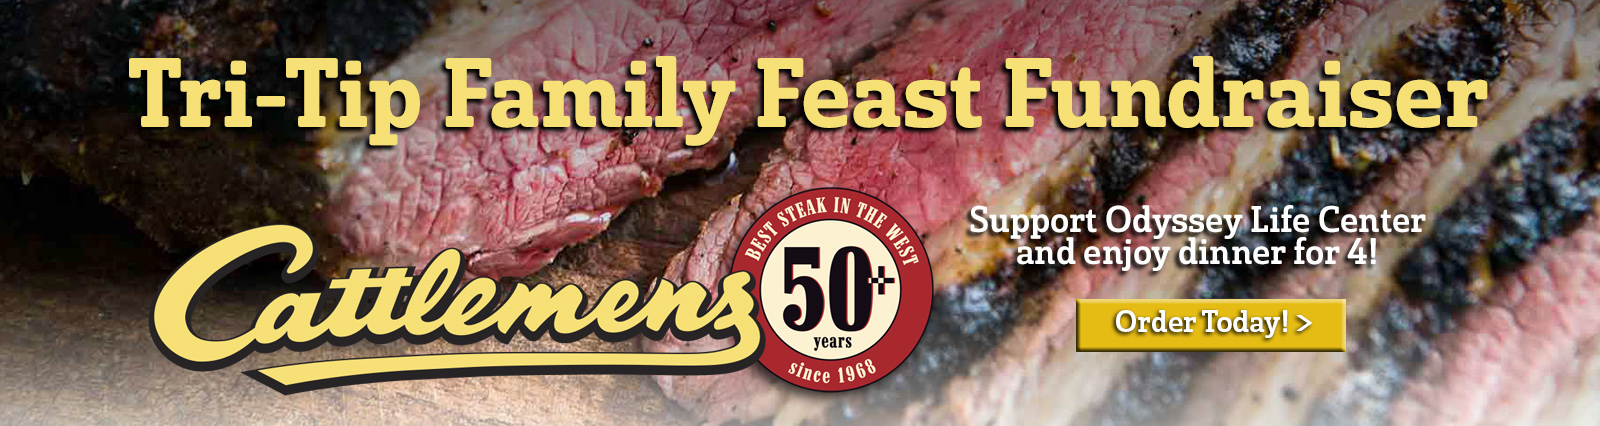 tri-tip family feast at cattlemens